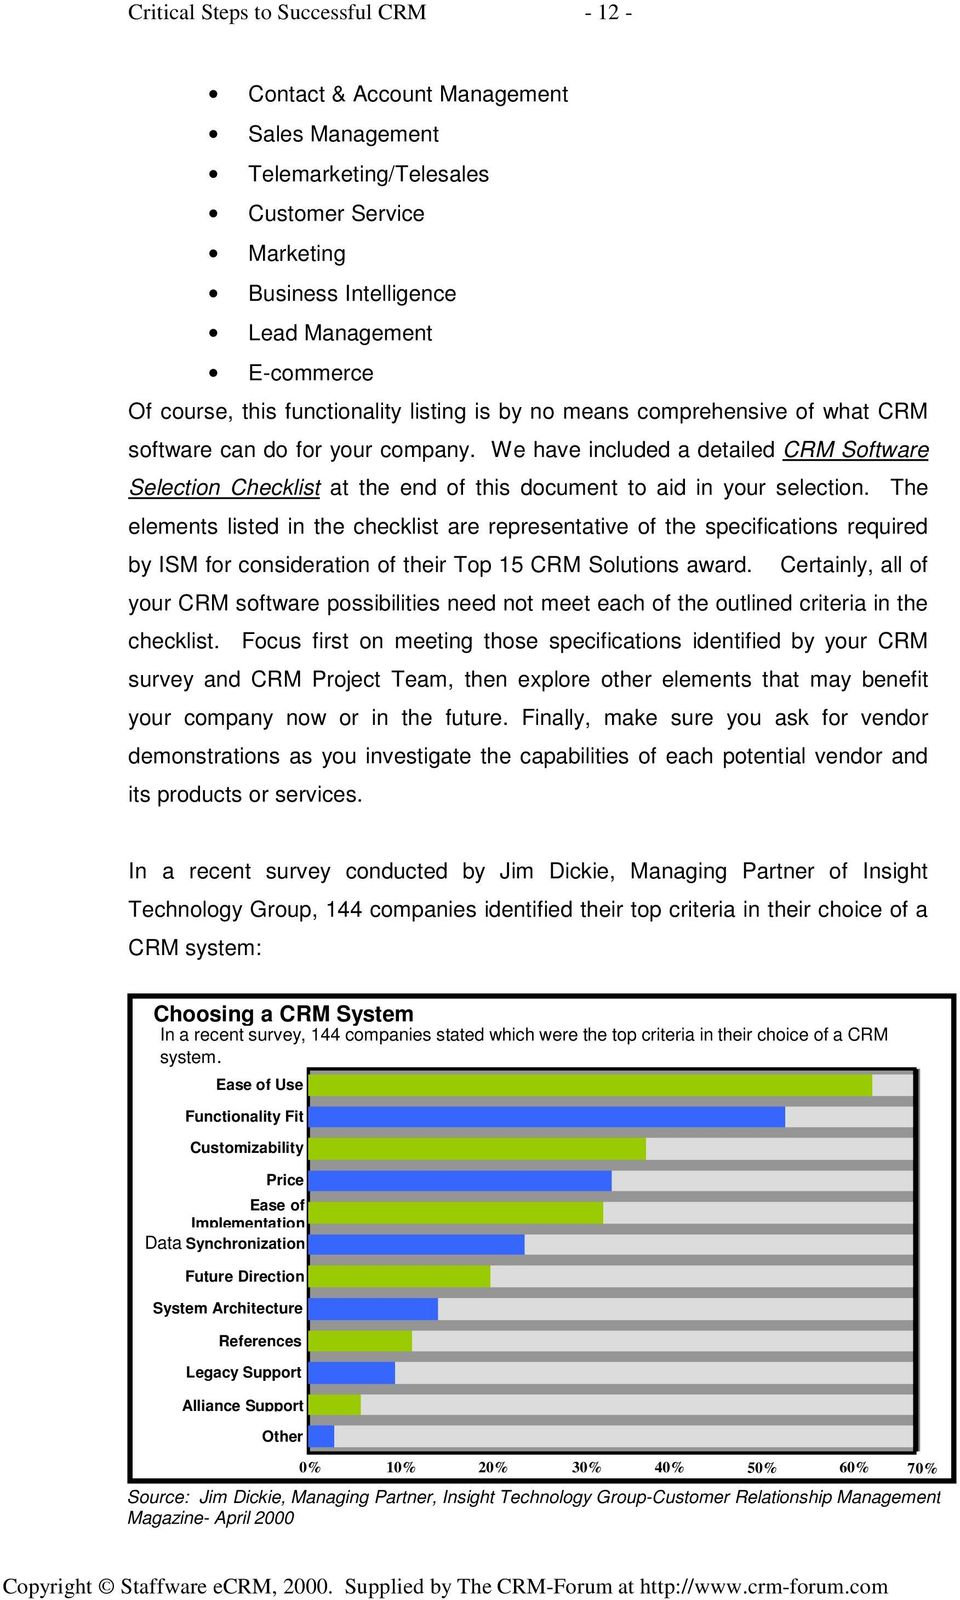 We have included a detailed CRM Software Selection Checklist at the end of this document to aid in your selection.